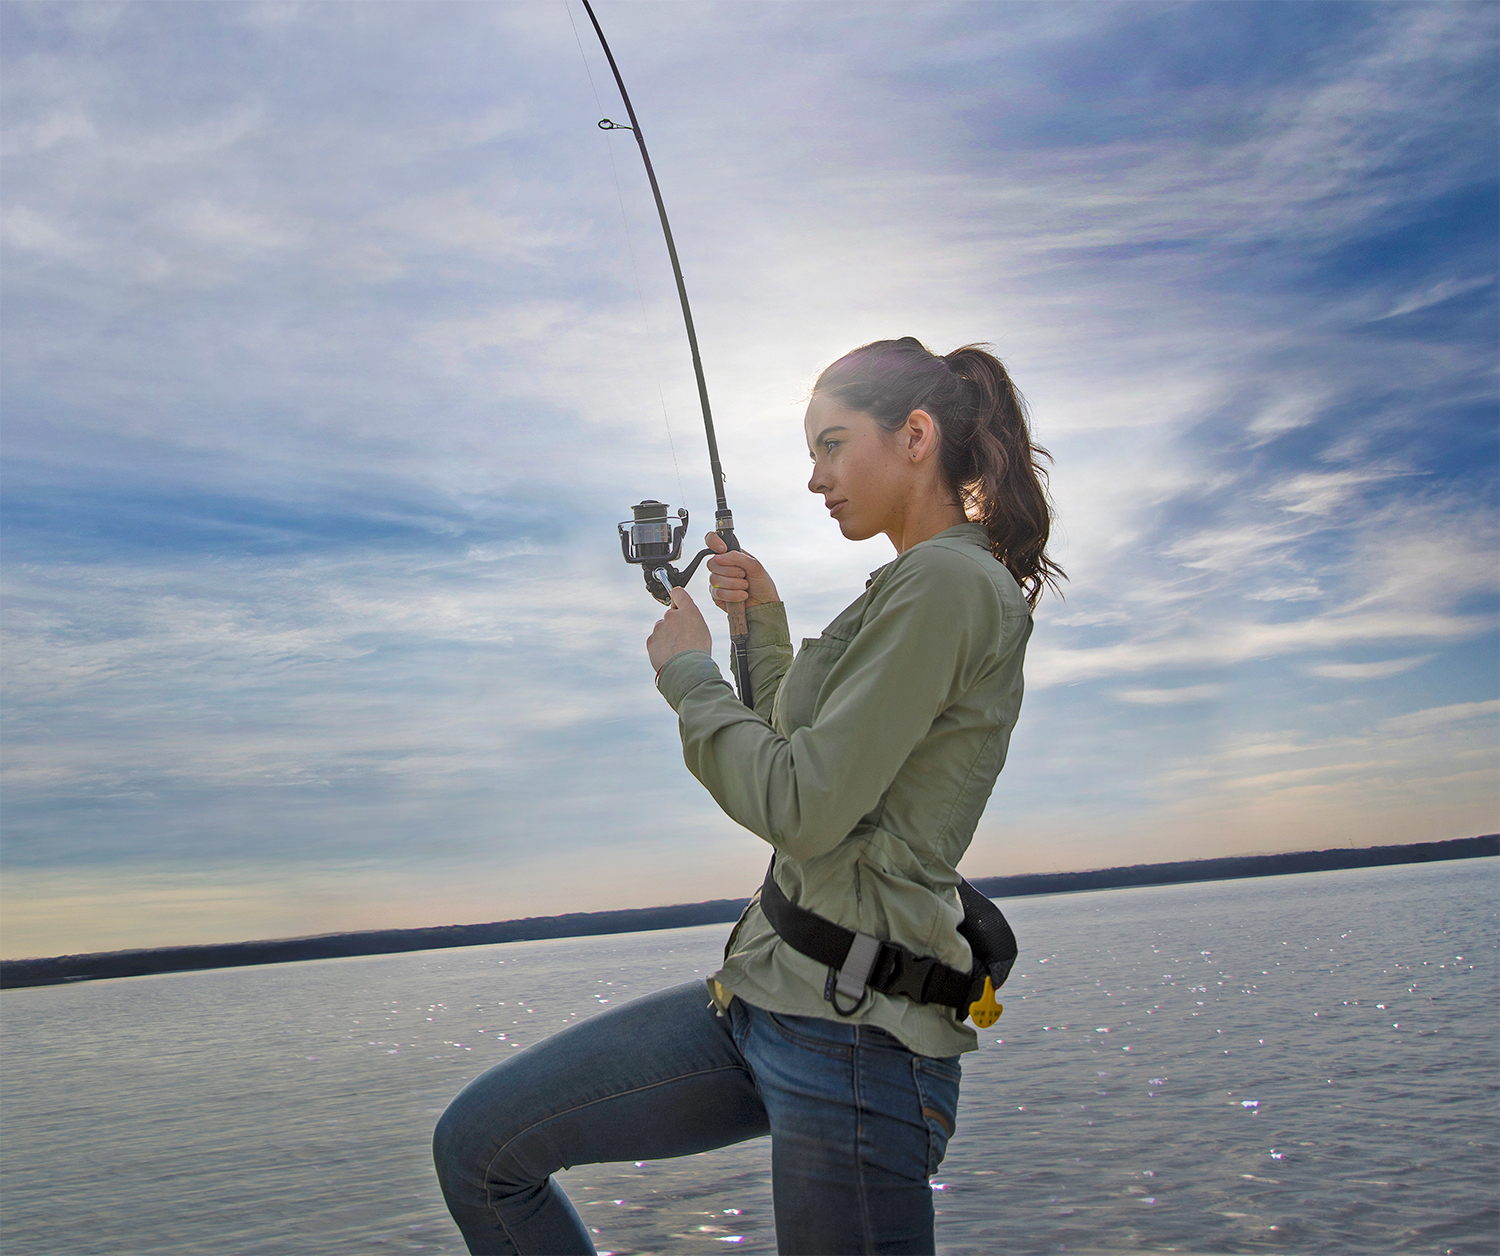 Woman With Fishing Rod On A Boat